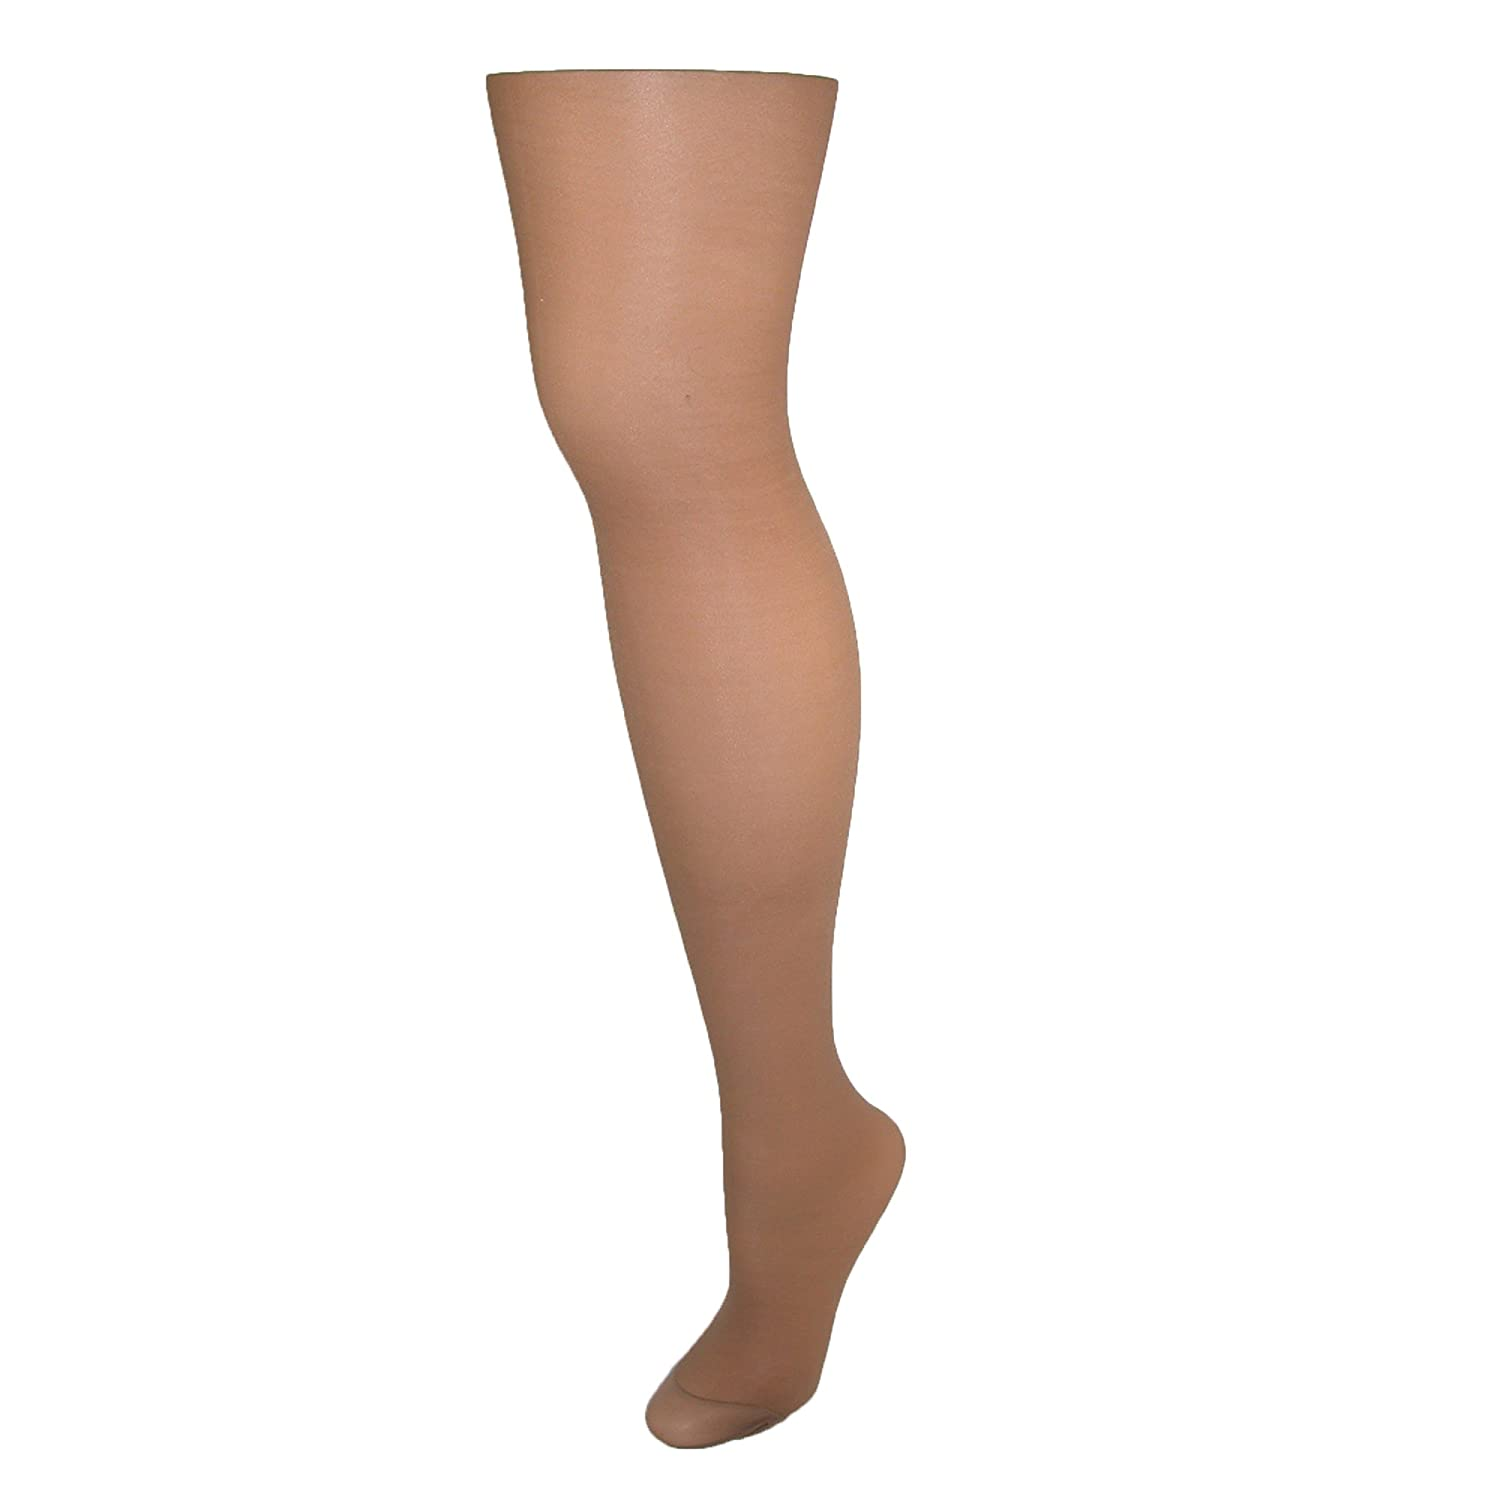 Can i love to wear hanes pantyhose topic Yes